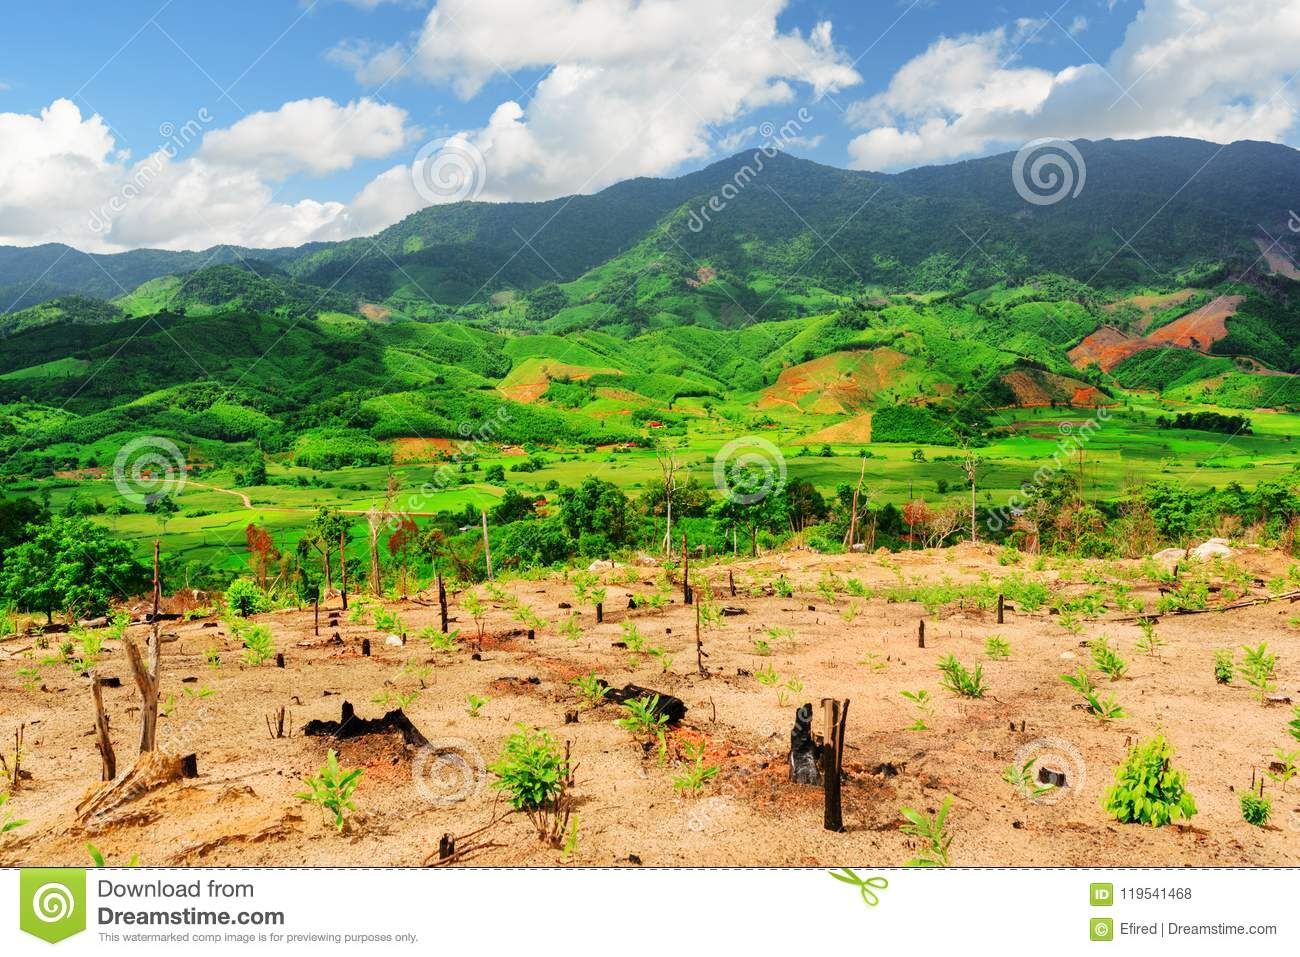 Scenic view of beautiful mountains and bright green rice fields